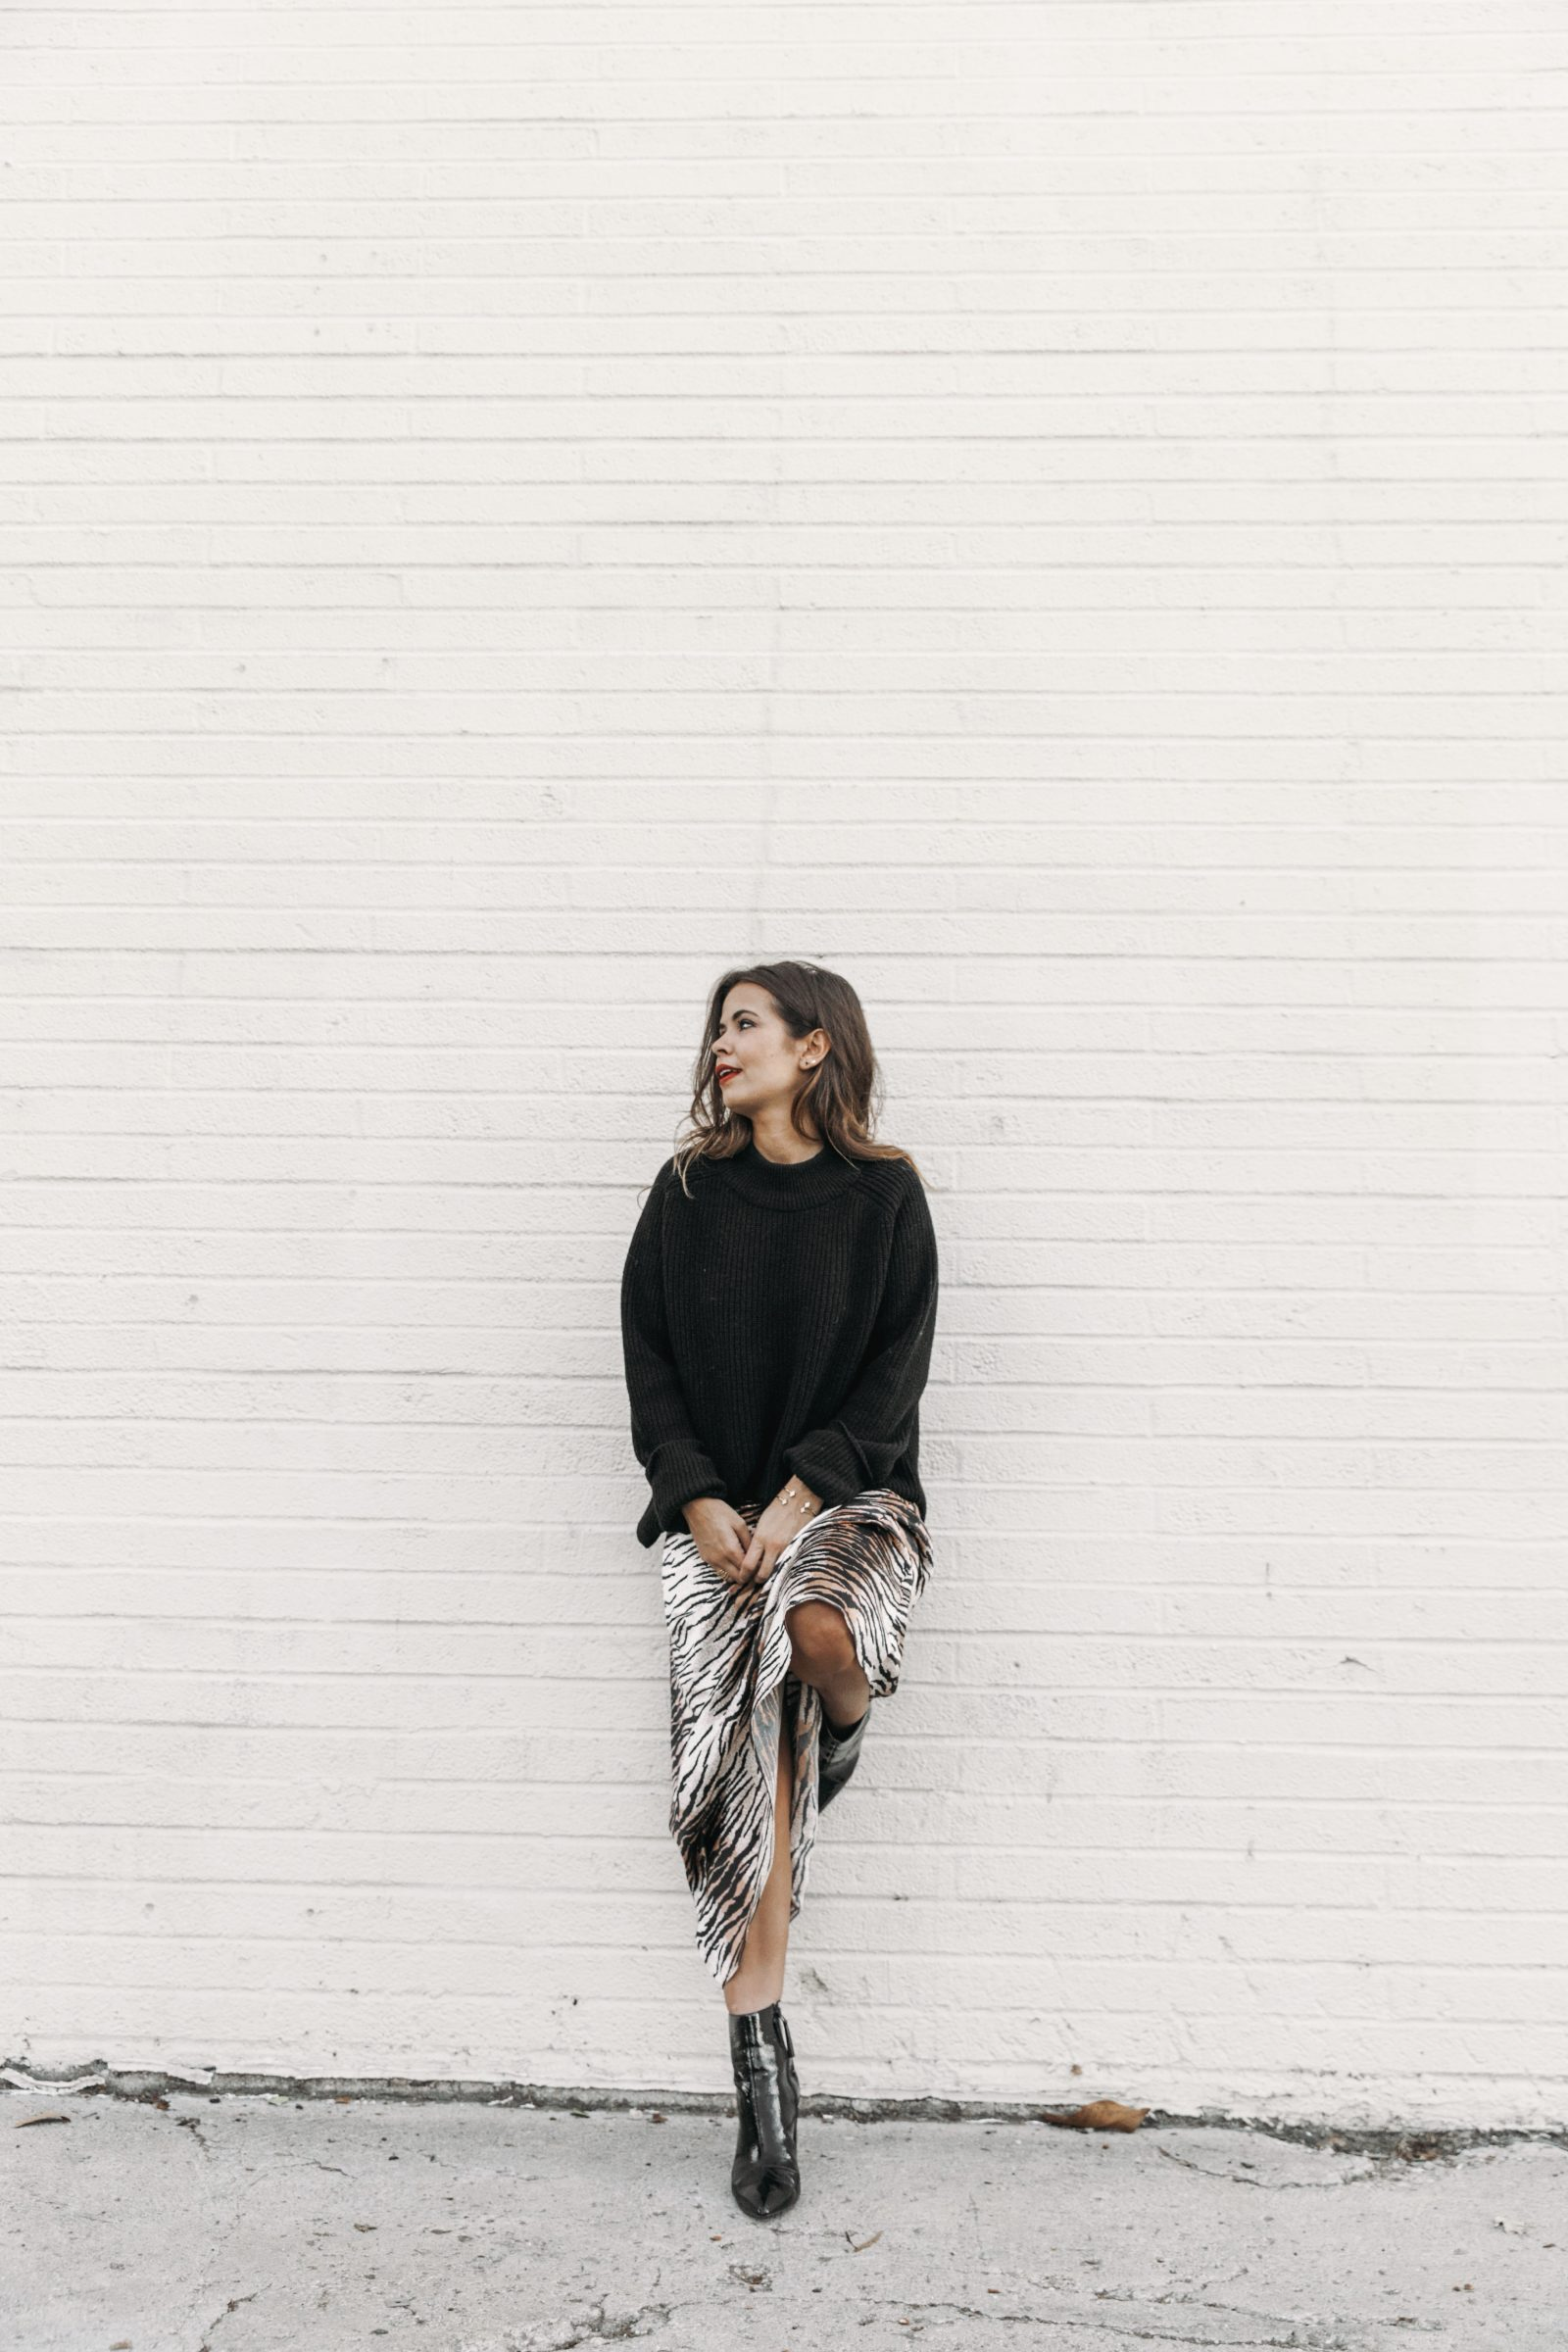 mark_and_spencer-alexa_chung_collection-animal_print_long_dress-black_trench-black_booties-knitt_jumper-outfit-la-street_style-collage_vintage-maxi_dress-96